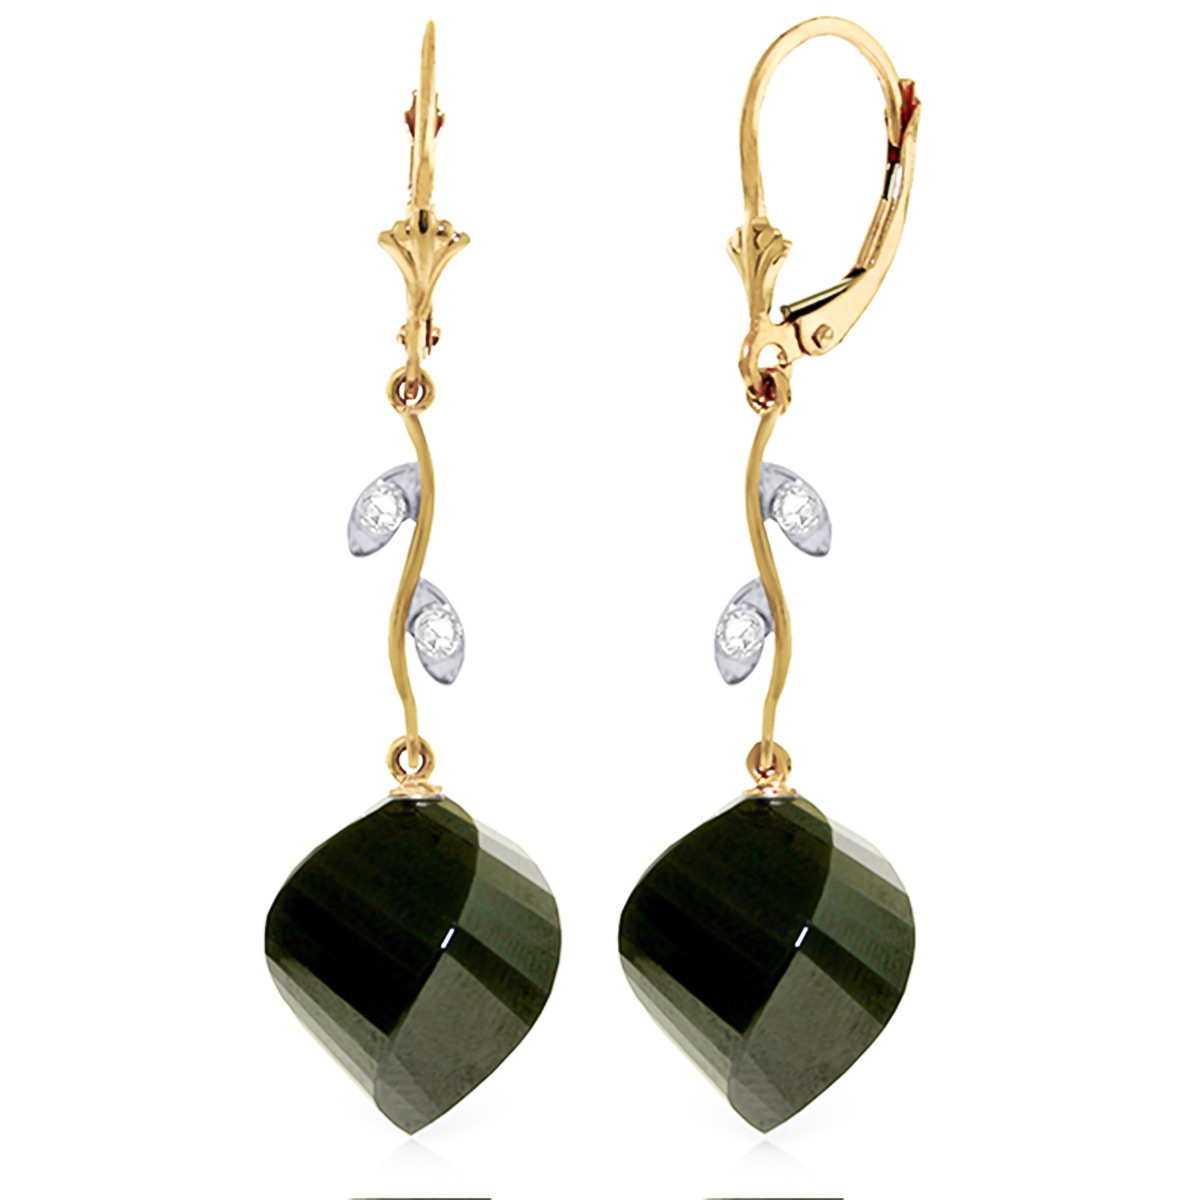 Black Spinel Drop Earrings 31.02 ctw in 9ct Gold